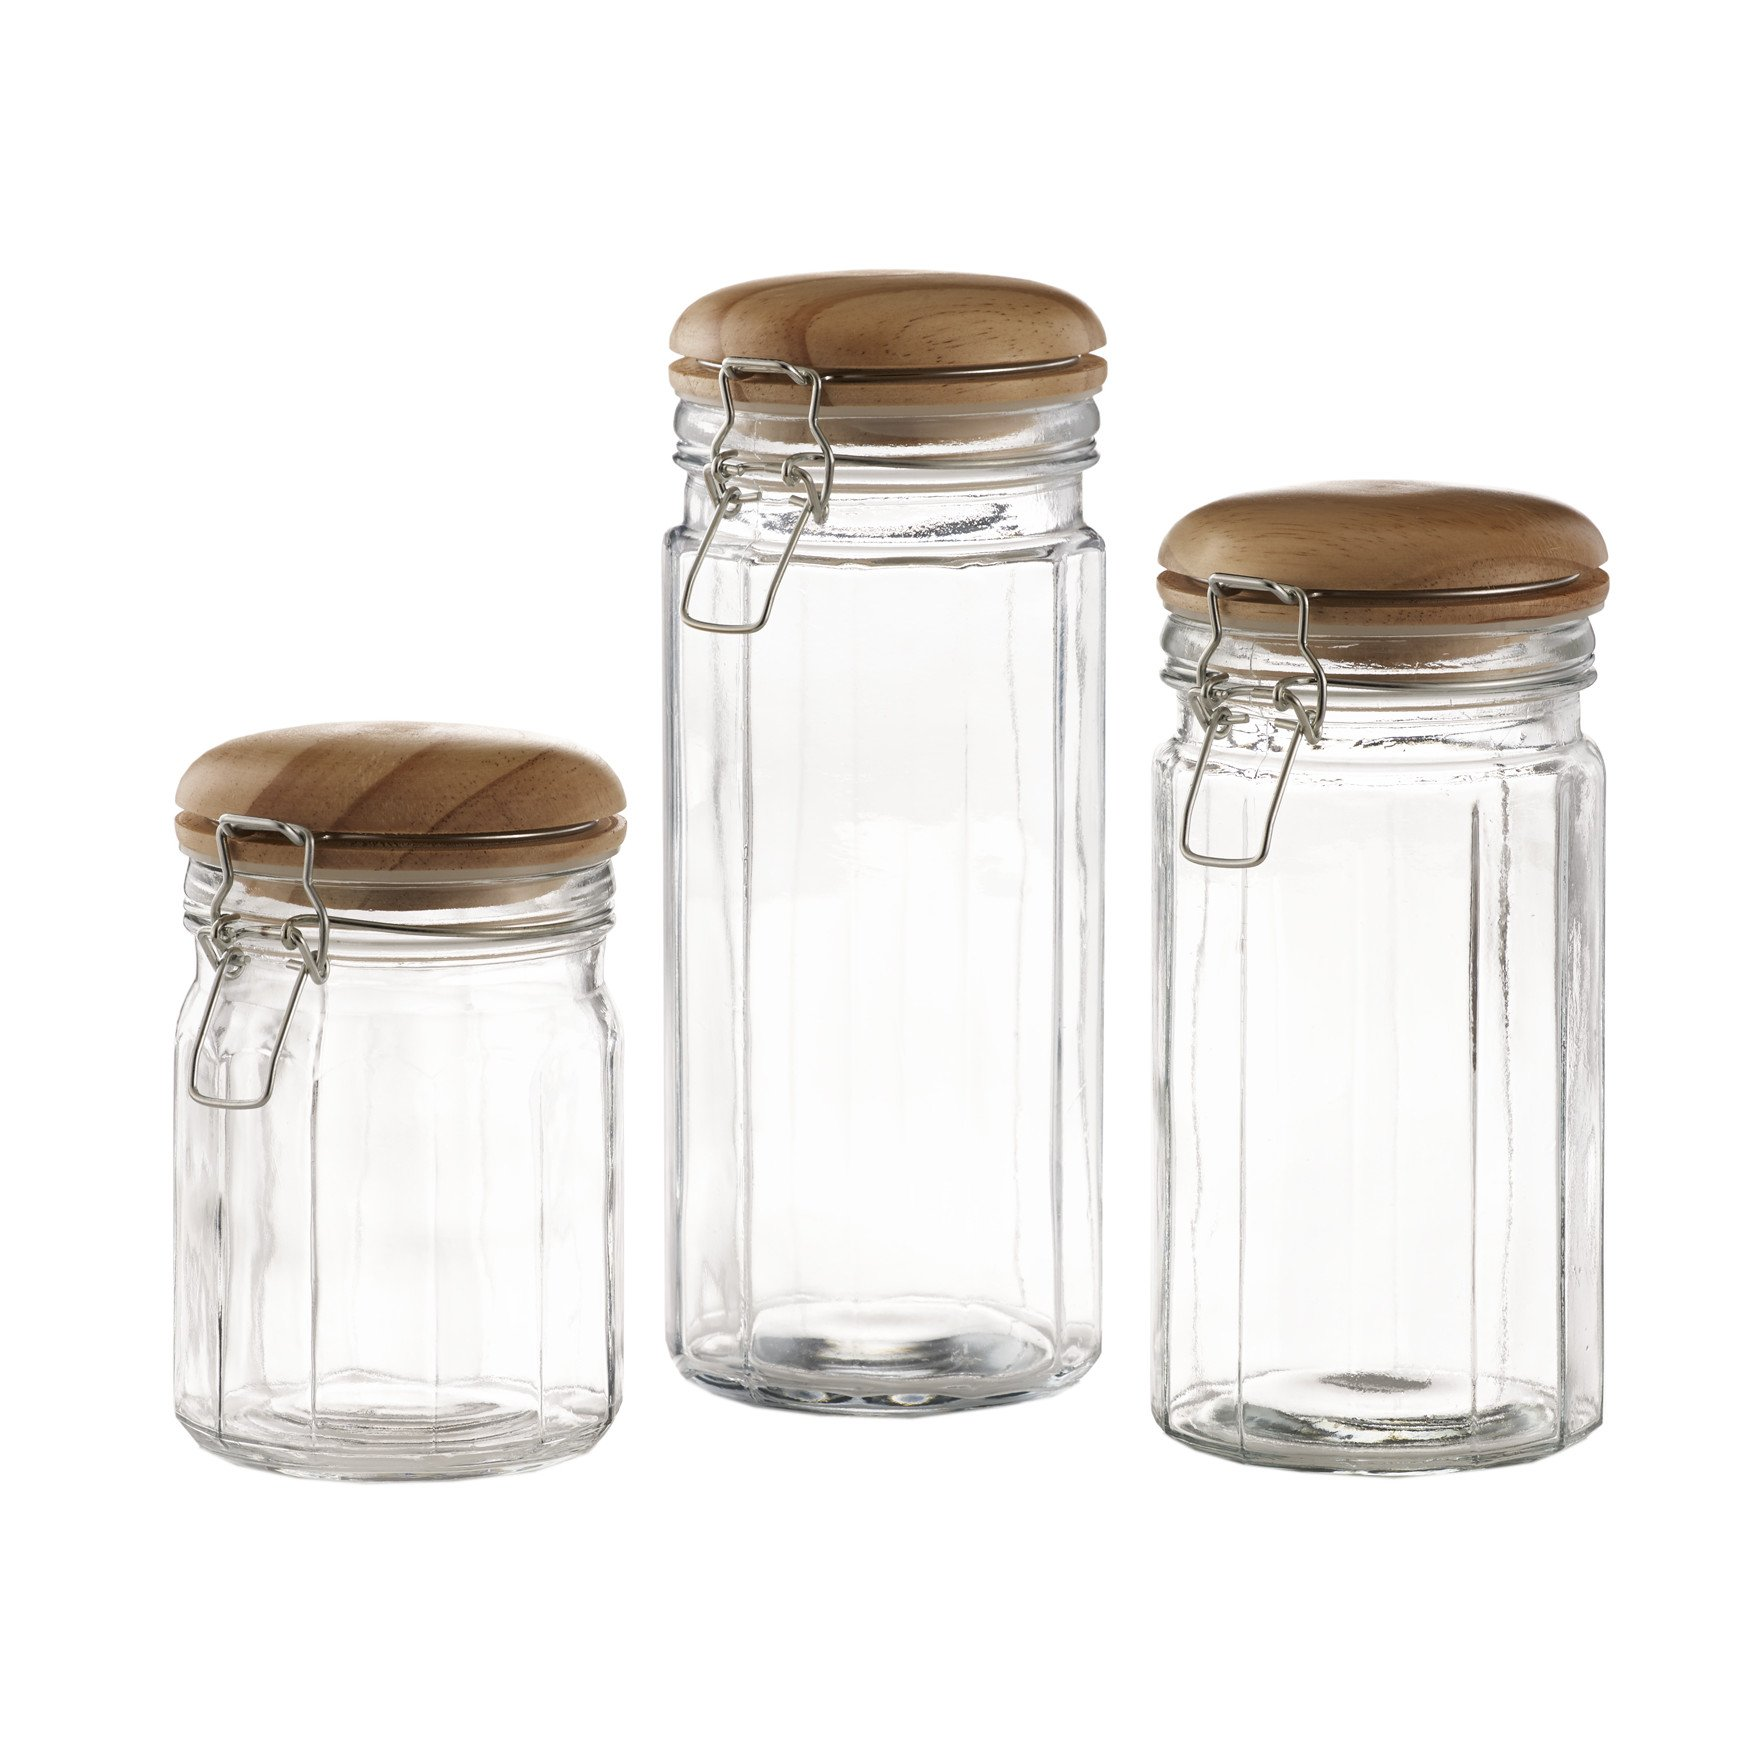 Set of 3 Glass Canister Jars with Trigger Airtight Tight Lids and Wooden Cover for Kitchen Countertop and Bathroom Clear, Round, Food, Cookie, Cracker, Storage Containers